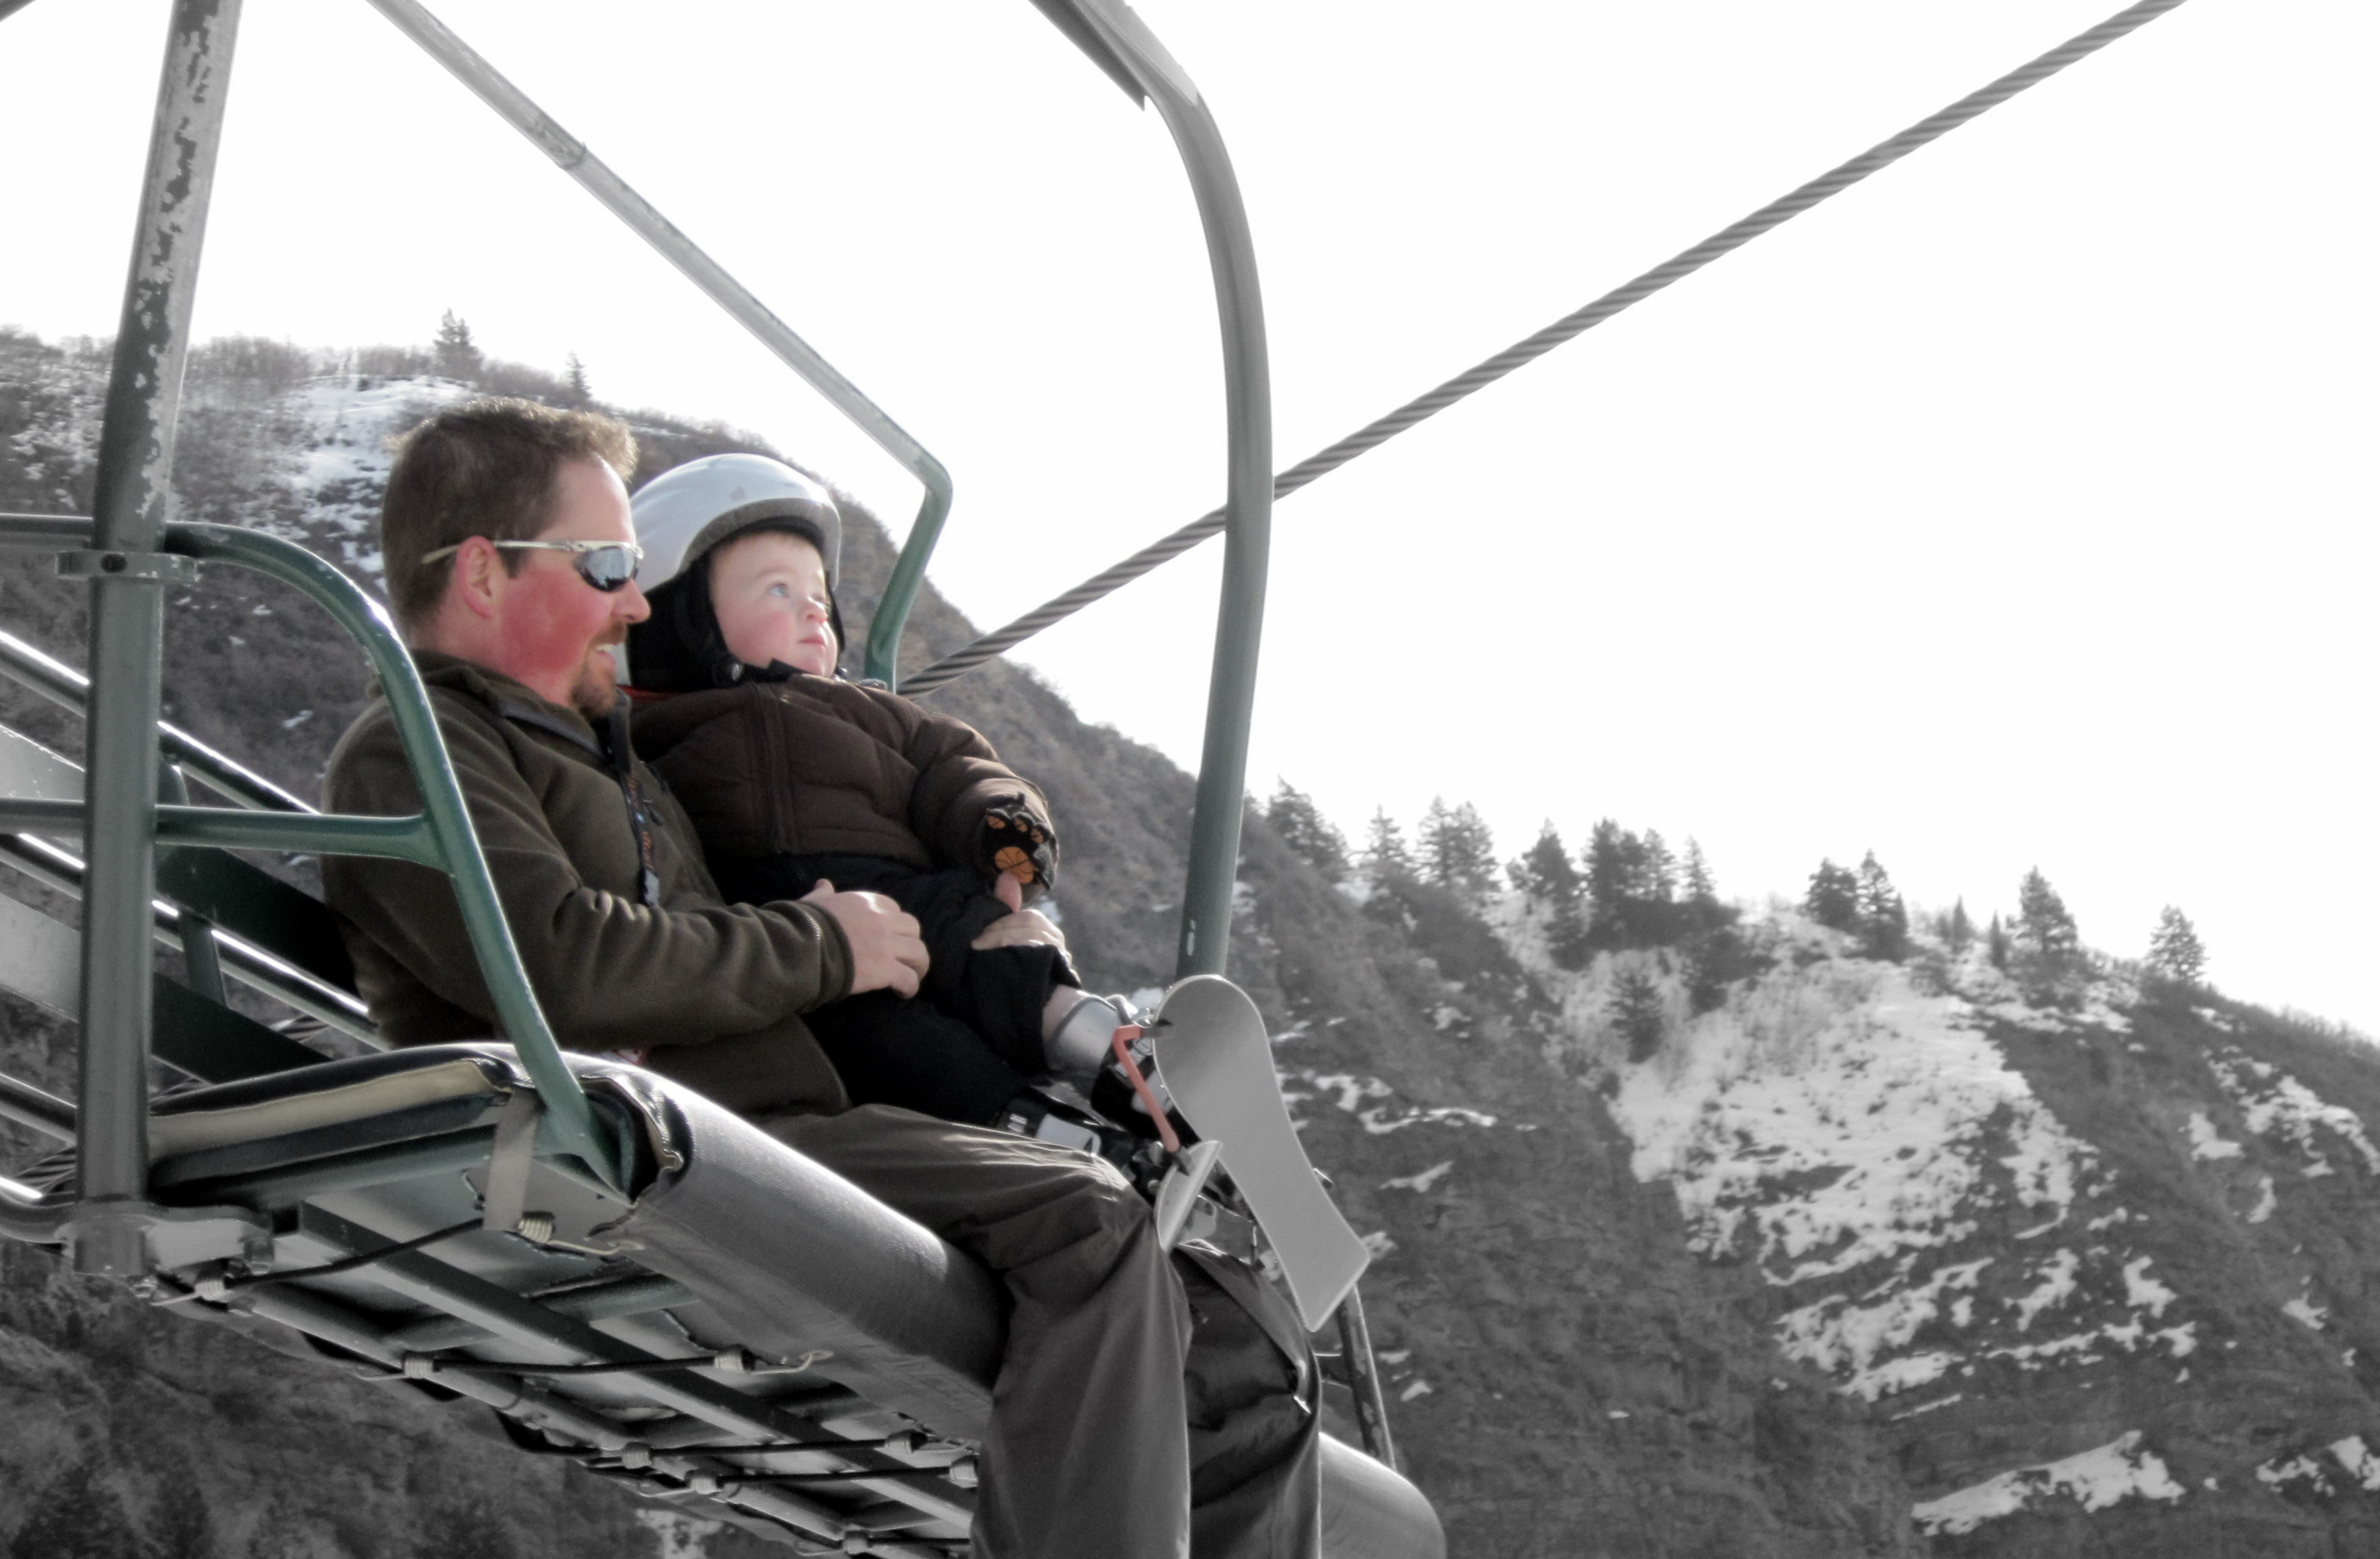 Solomon and Dad on the Ski Lift